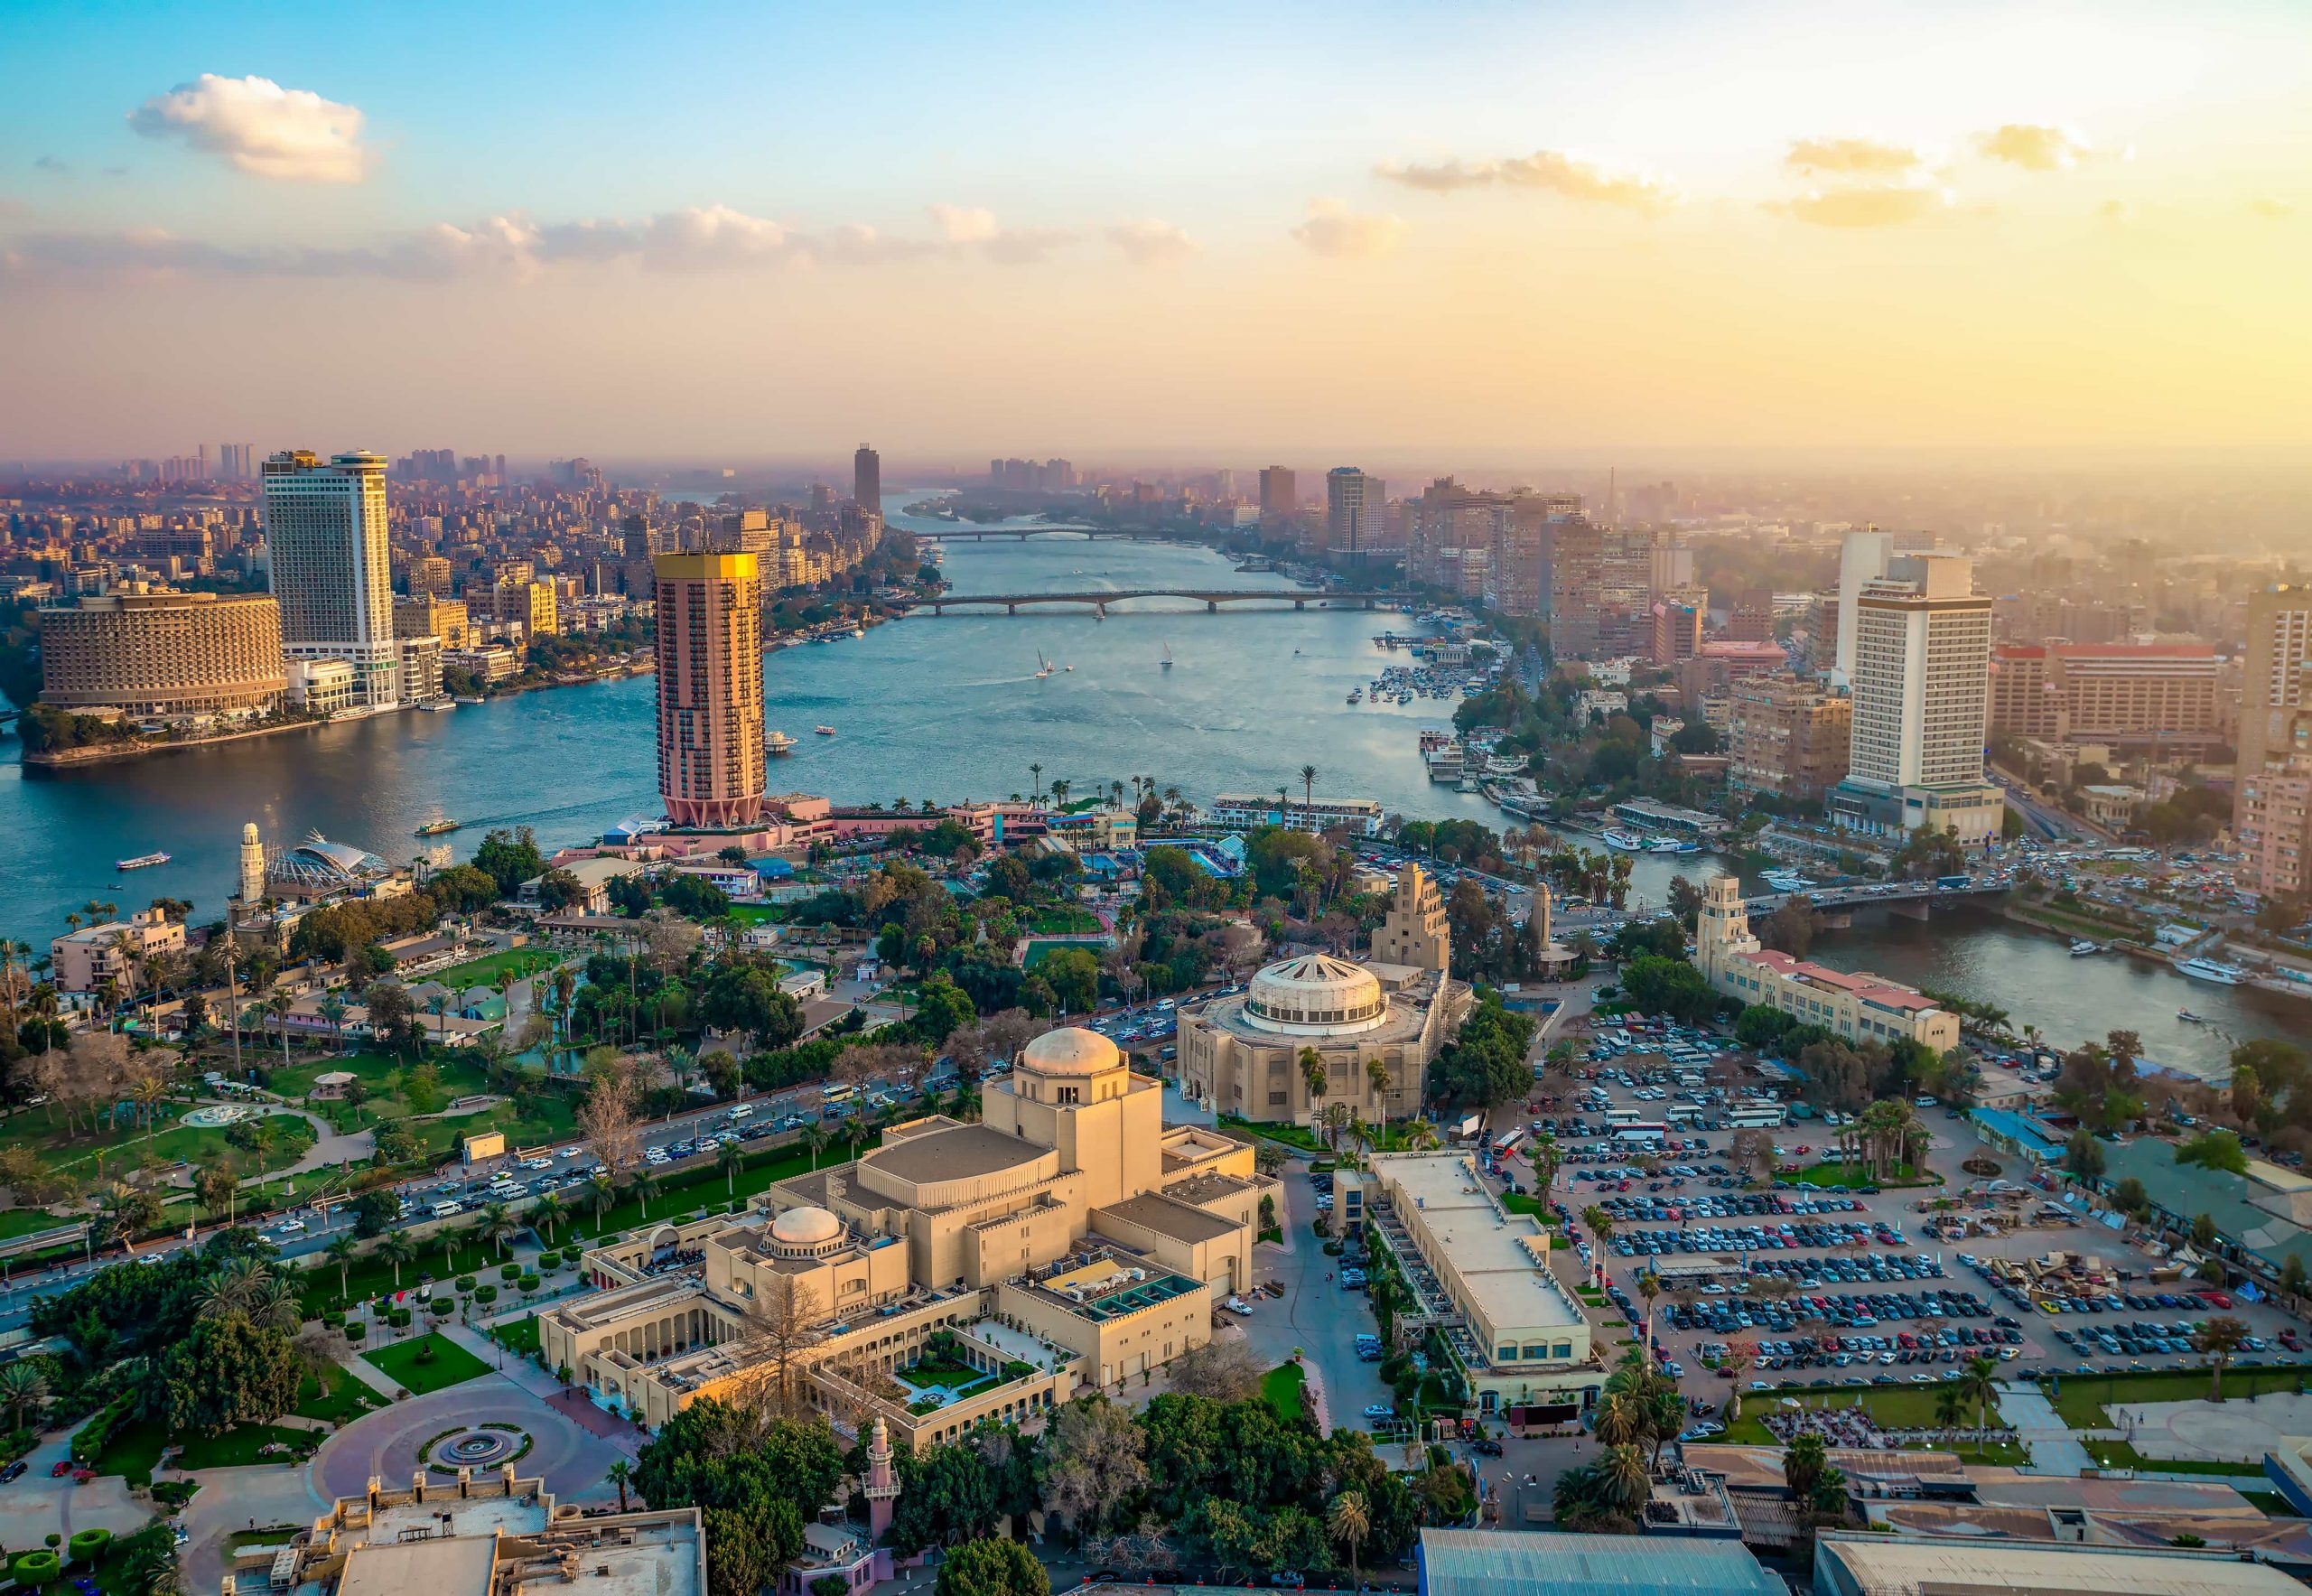 Panorama of Cairo cityscape taken during the sunset from the famous Cairo tower, Cairo, Egypt | merveilleuse egypte